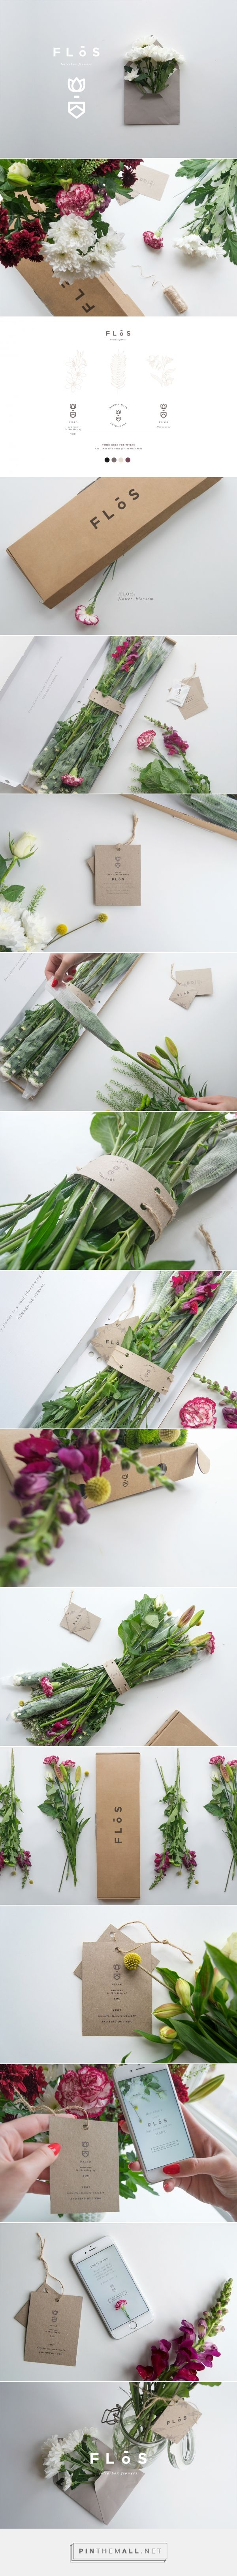 Flōs - Letterbox Flowers Logo Design & Packaging by Giadaland… More